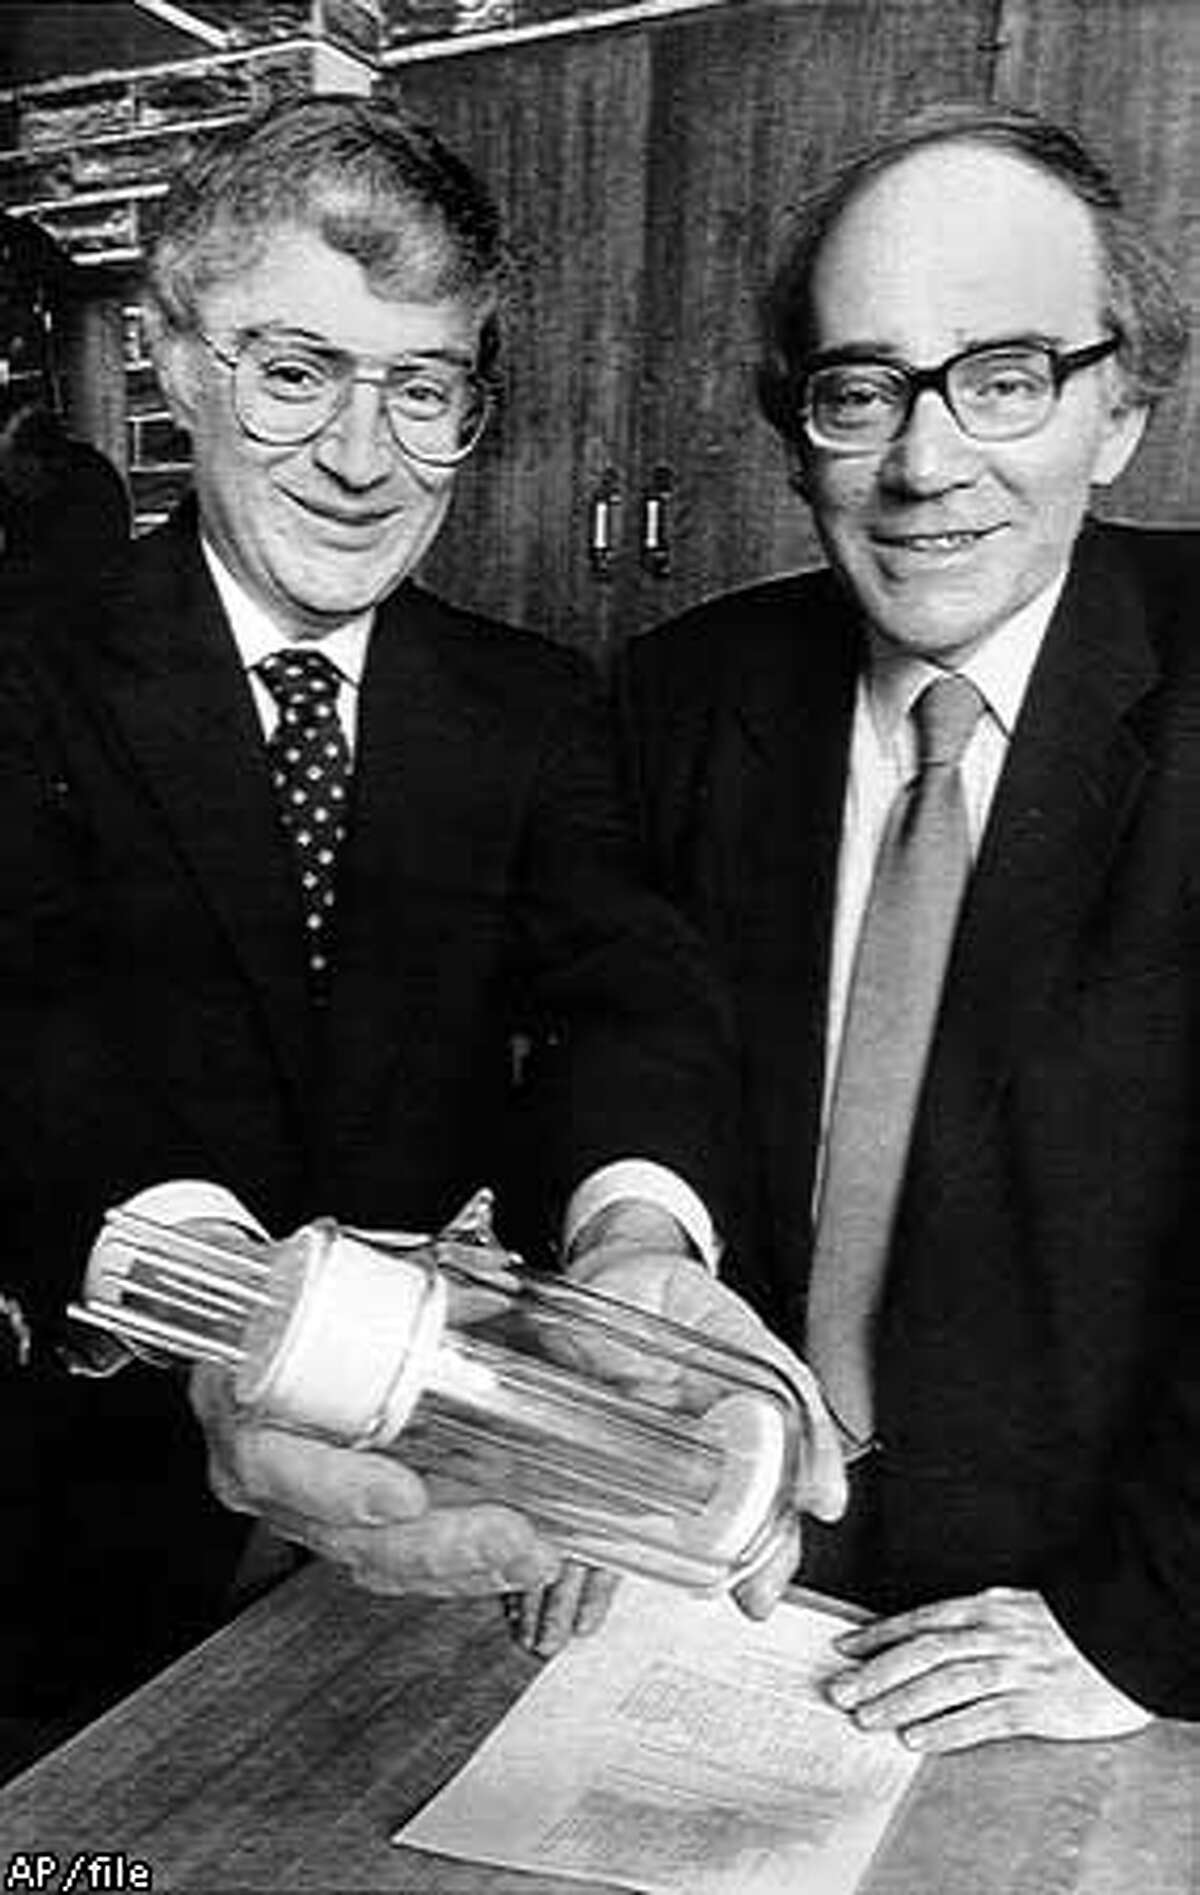 """Utah researchers B. Stanley Pons and Martin Fleischmann displayed a large-scale model of the flask in which they said they created sustained """"cold fusion"""" reaction, a claim undermined by other scientists' experiments. Associated Press File Photo"""